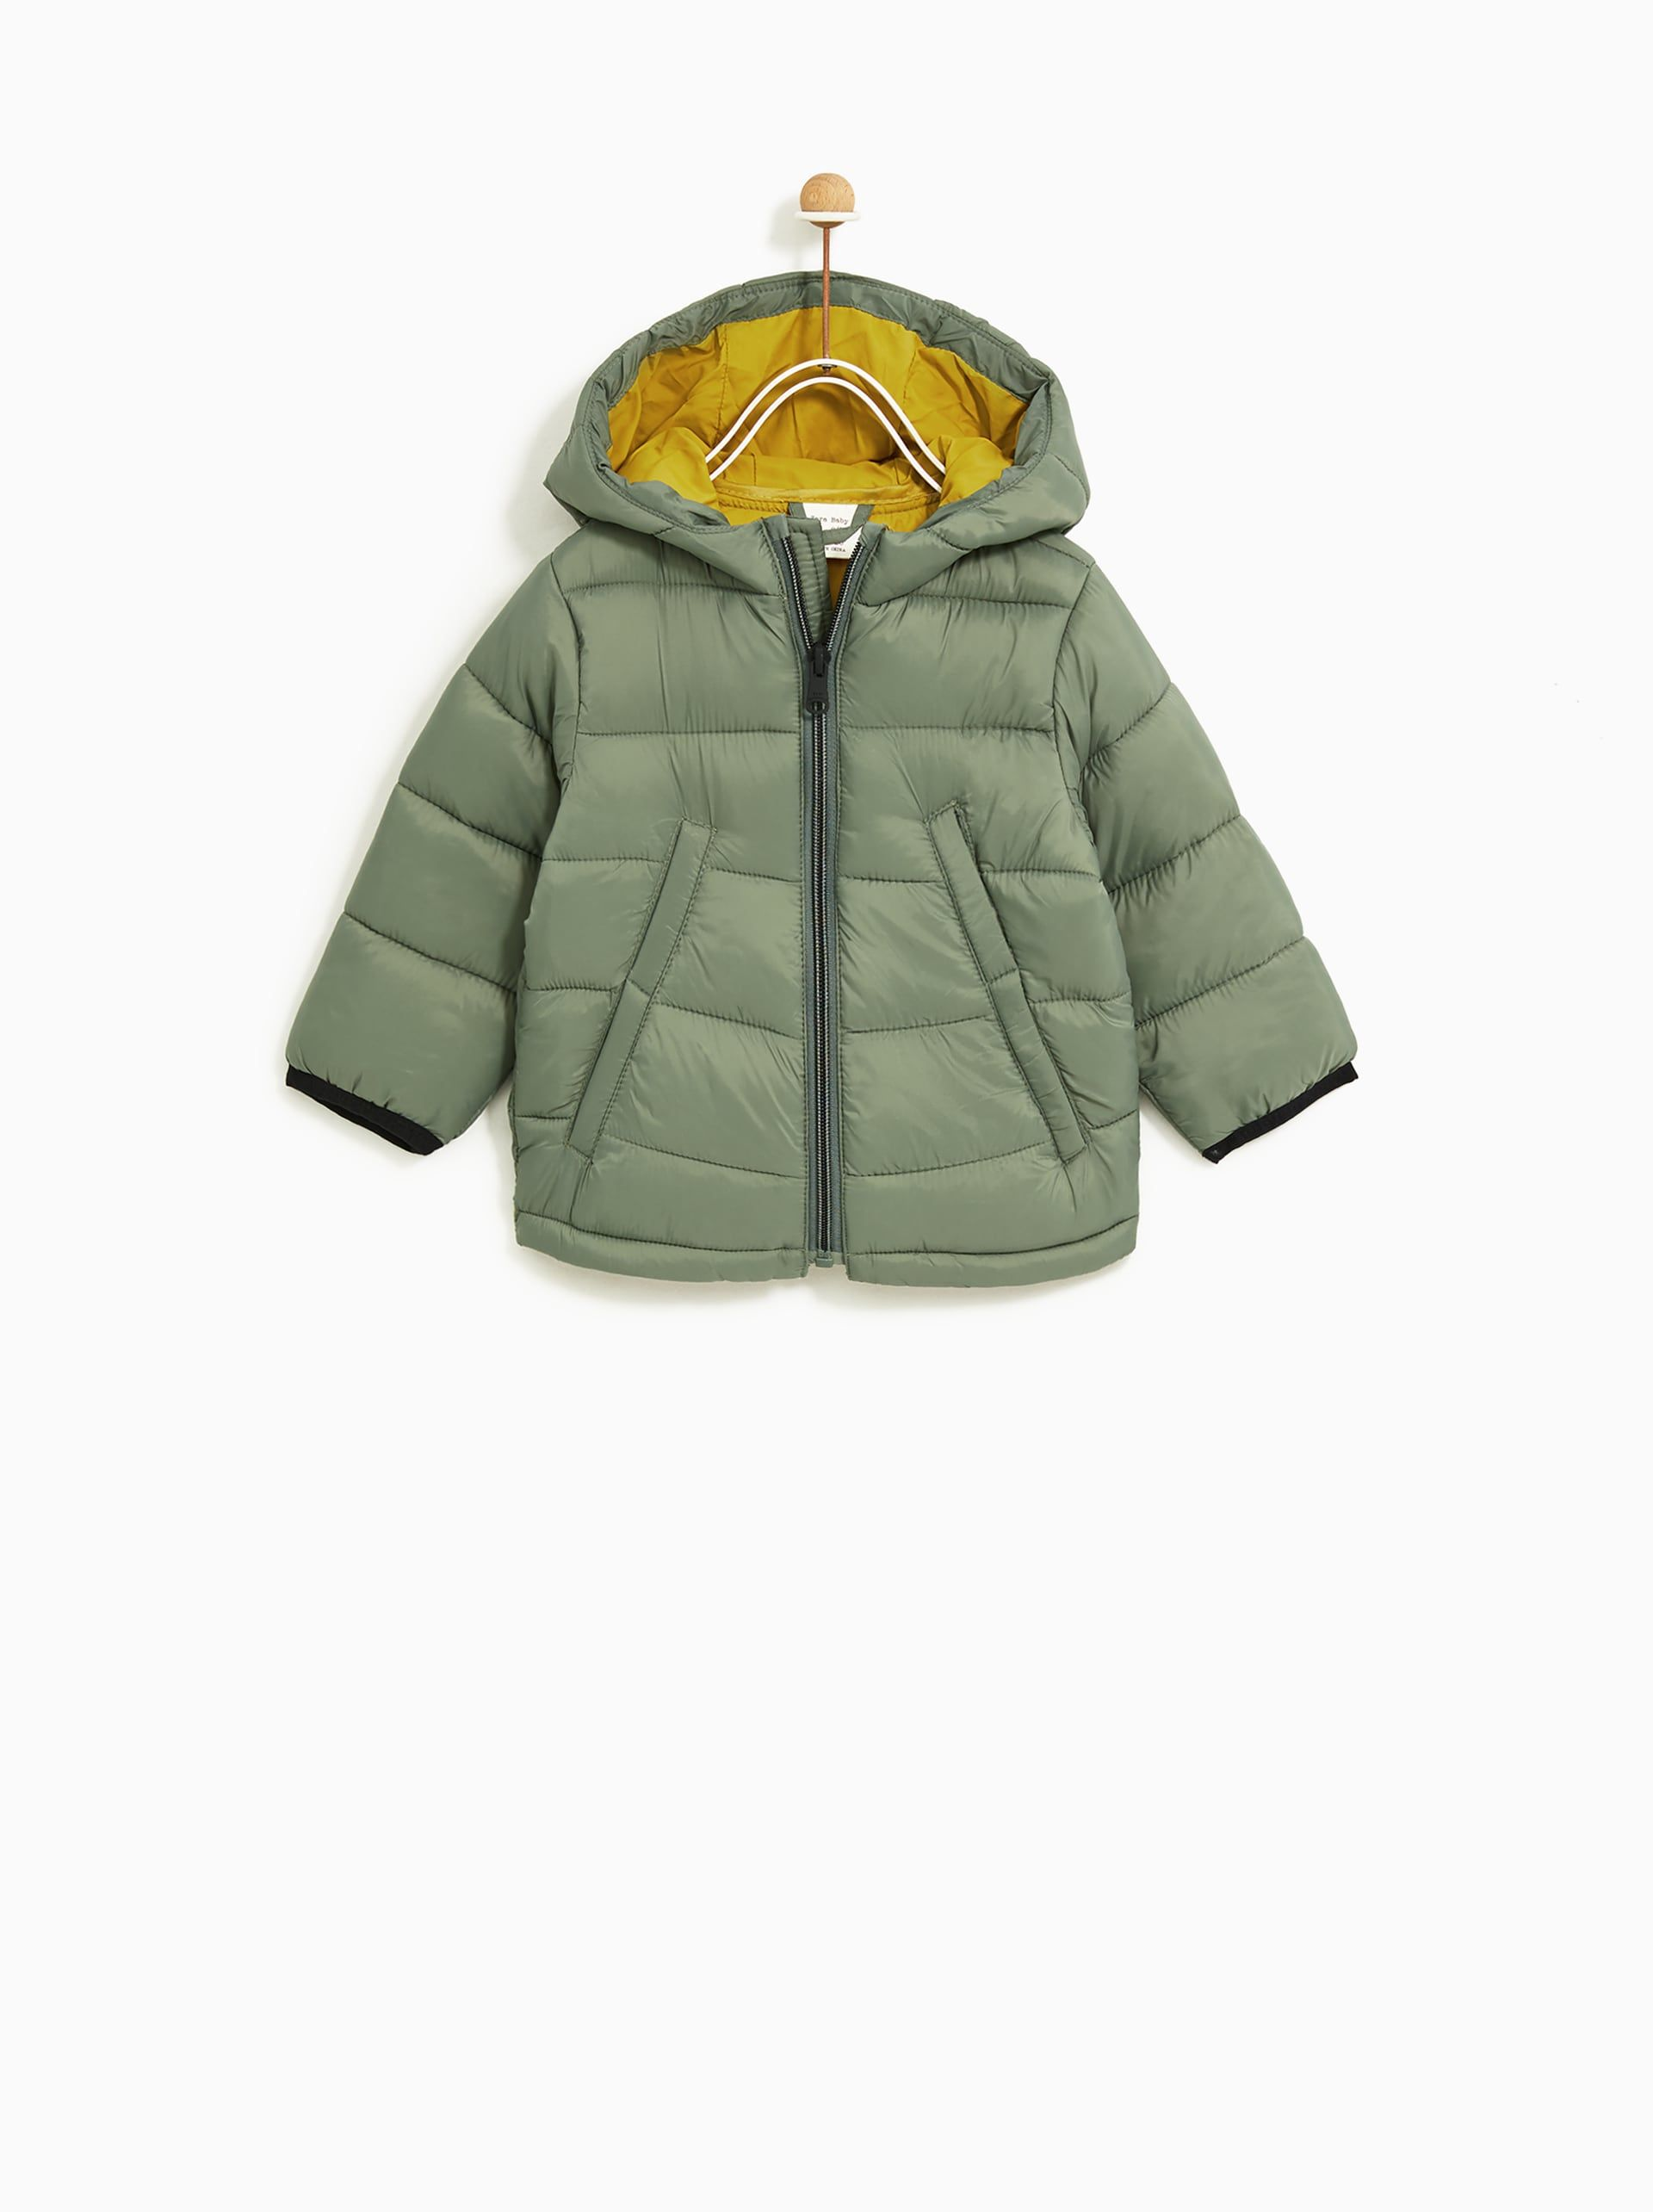 Lightweight Puffer Jacket Item Available In More Colors Jackets Puffer Jackets Kids Clothes Boys [ 2569 x 1920 Pixel ]